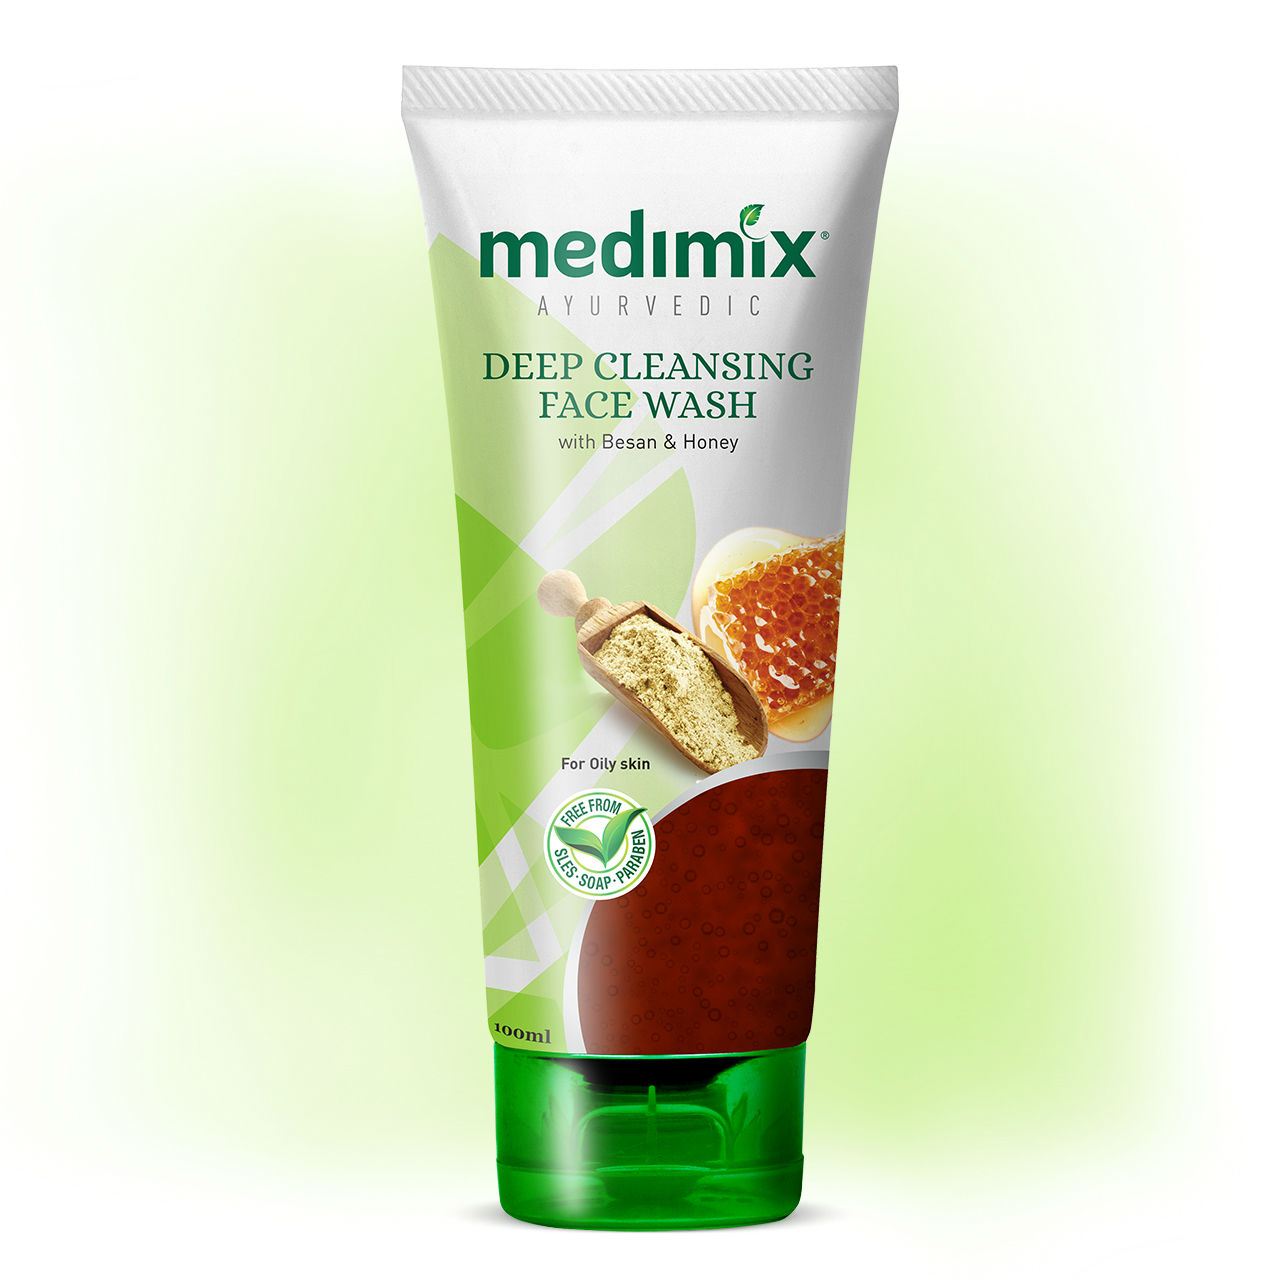 Medimix Deep Cleansing Face Wash